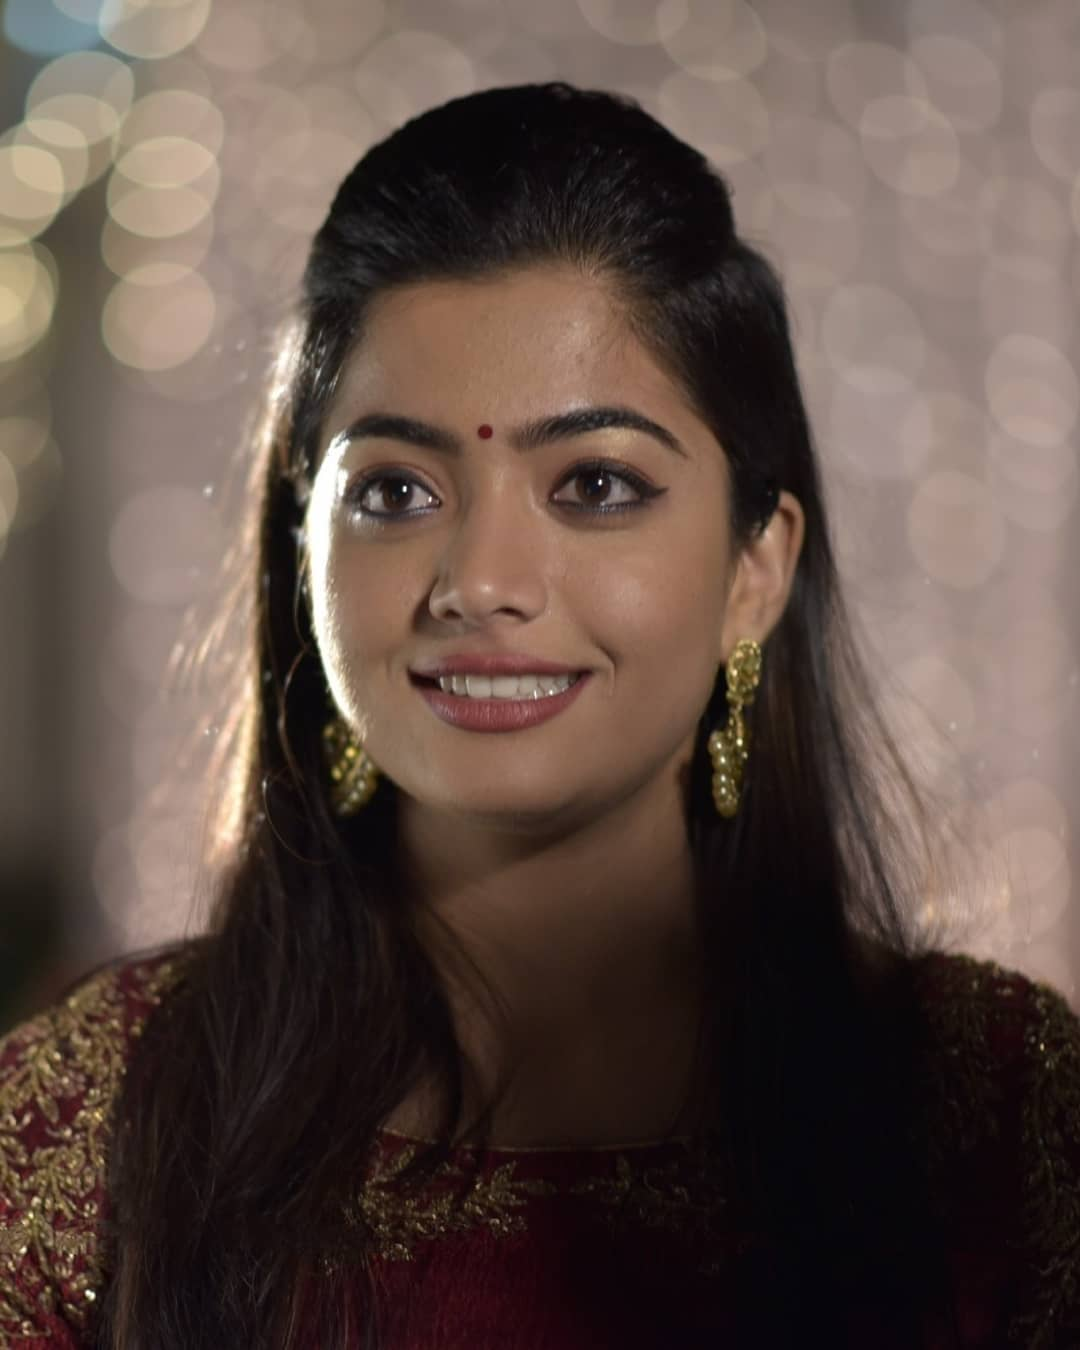 Rashmika mandana  IMAGES, GIF, ANIMATED GIF, WALLPAPER, STICKER FOR WHATSAPP & FACEBOOK